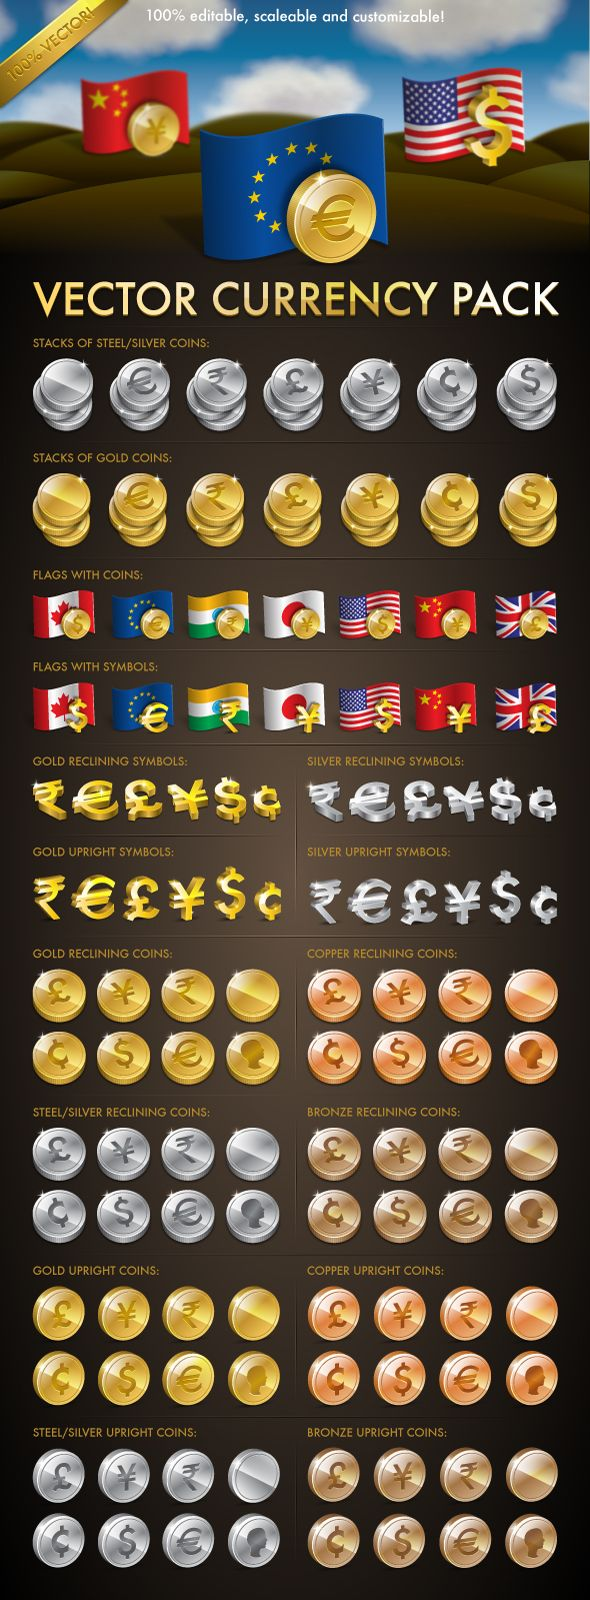 Vector Currency Pack by MelissaReneePohl